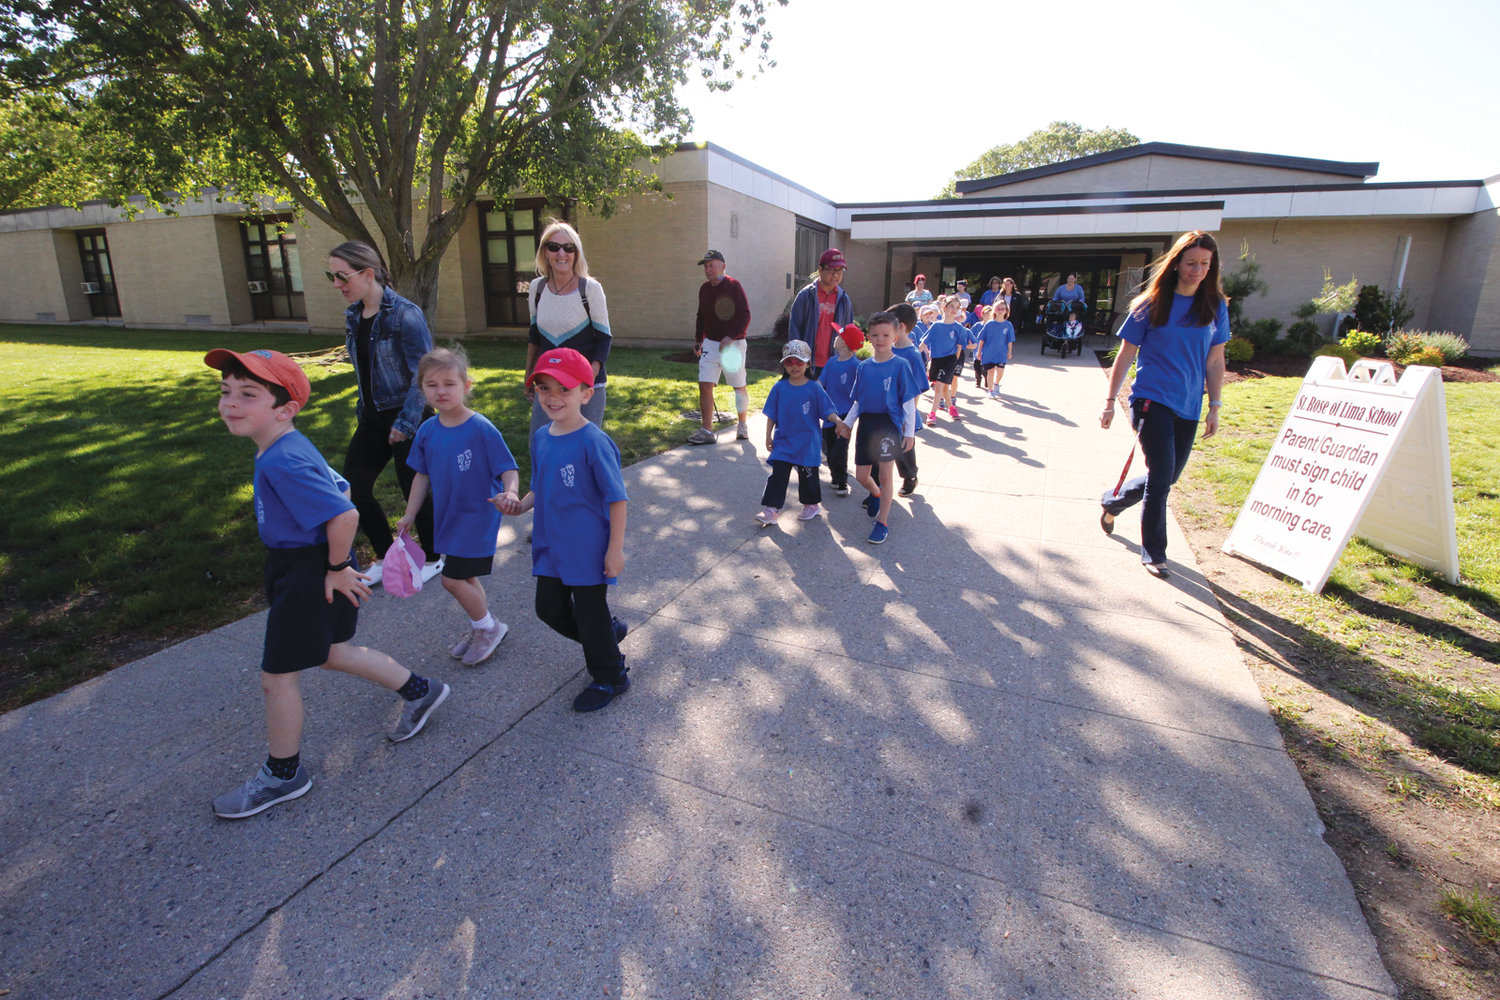 BUSTING OUT OF SCHOOL: Preschoolers and lower grade students took to the sunshine and warm and windy conditions for their walk around the block to benefit St. Rose of Lima School.